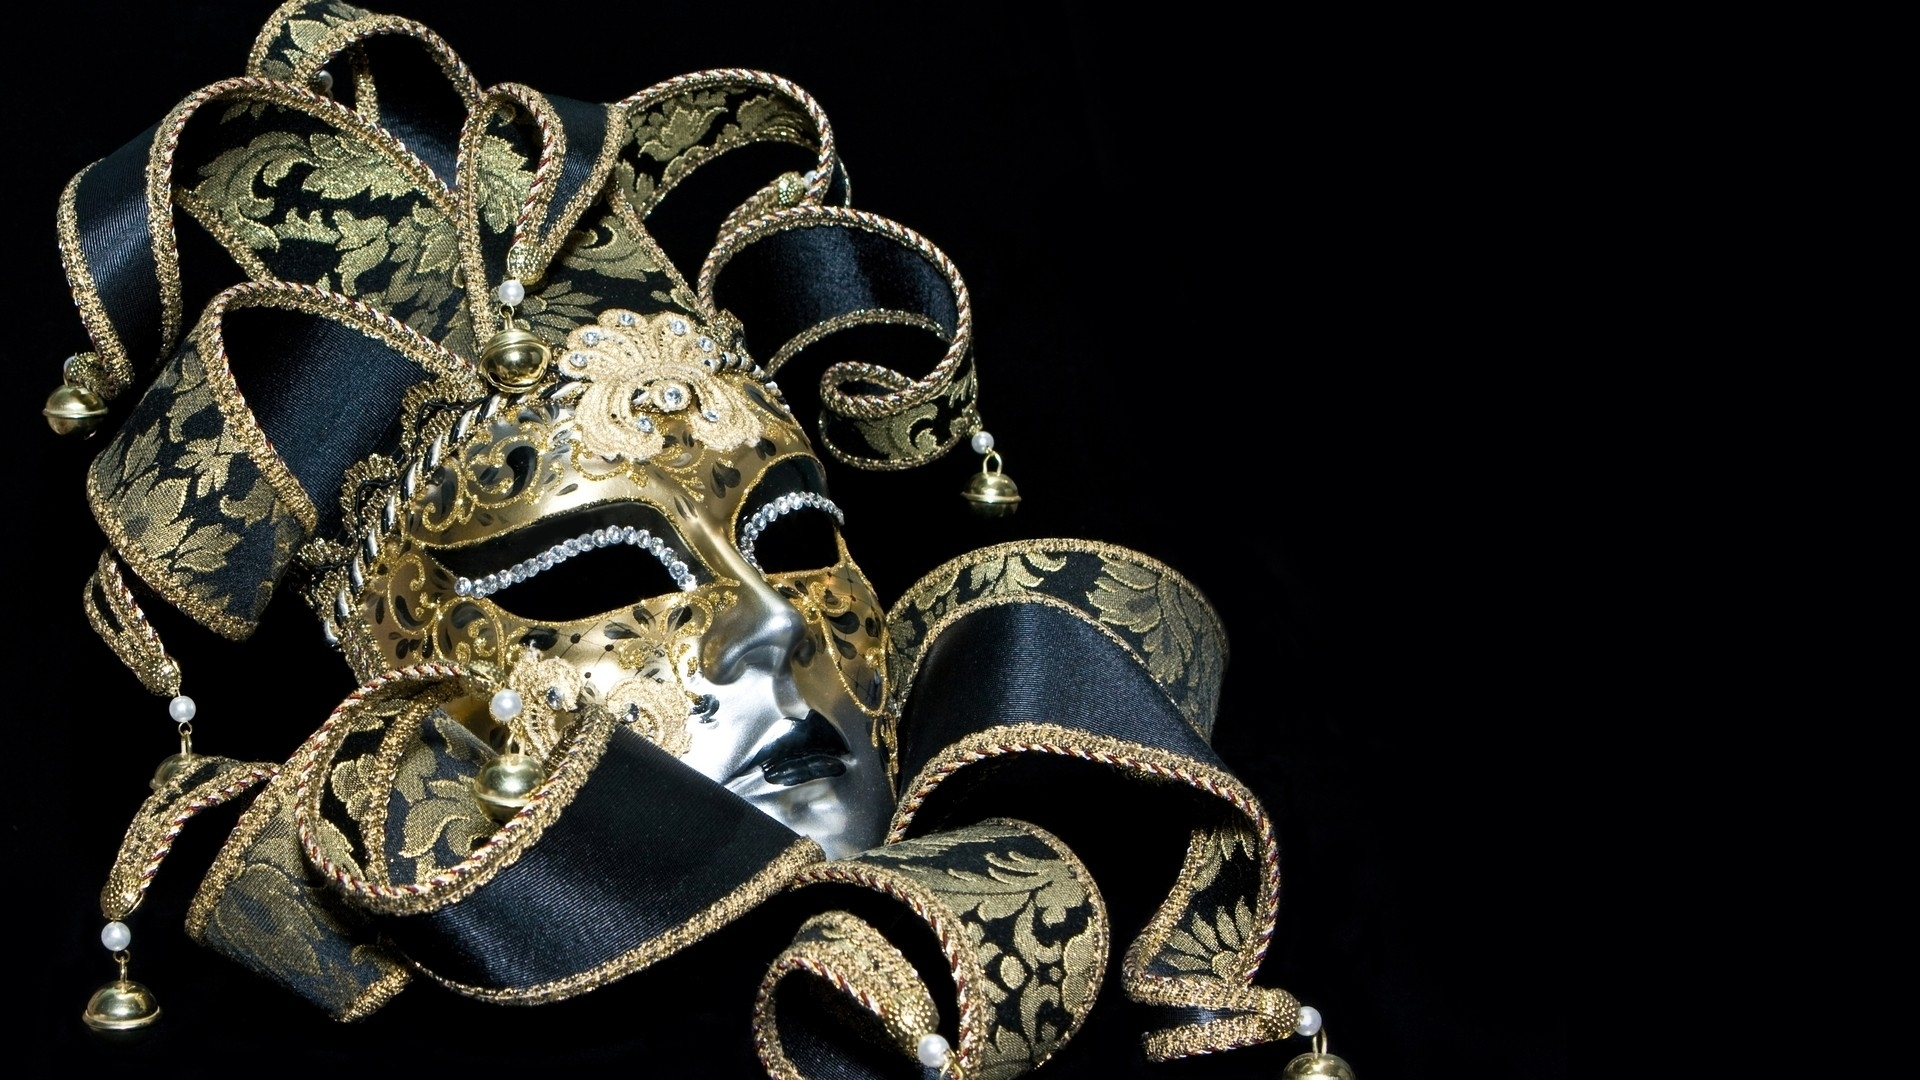 Masquerade Mask Wallpaper